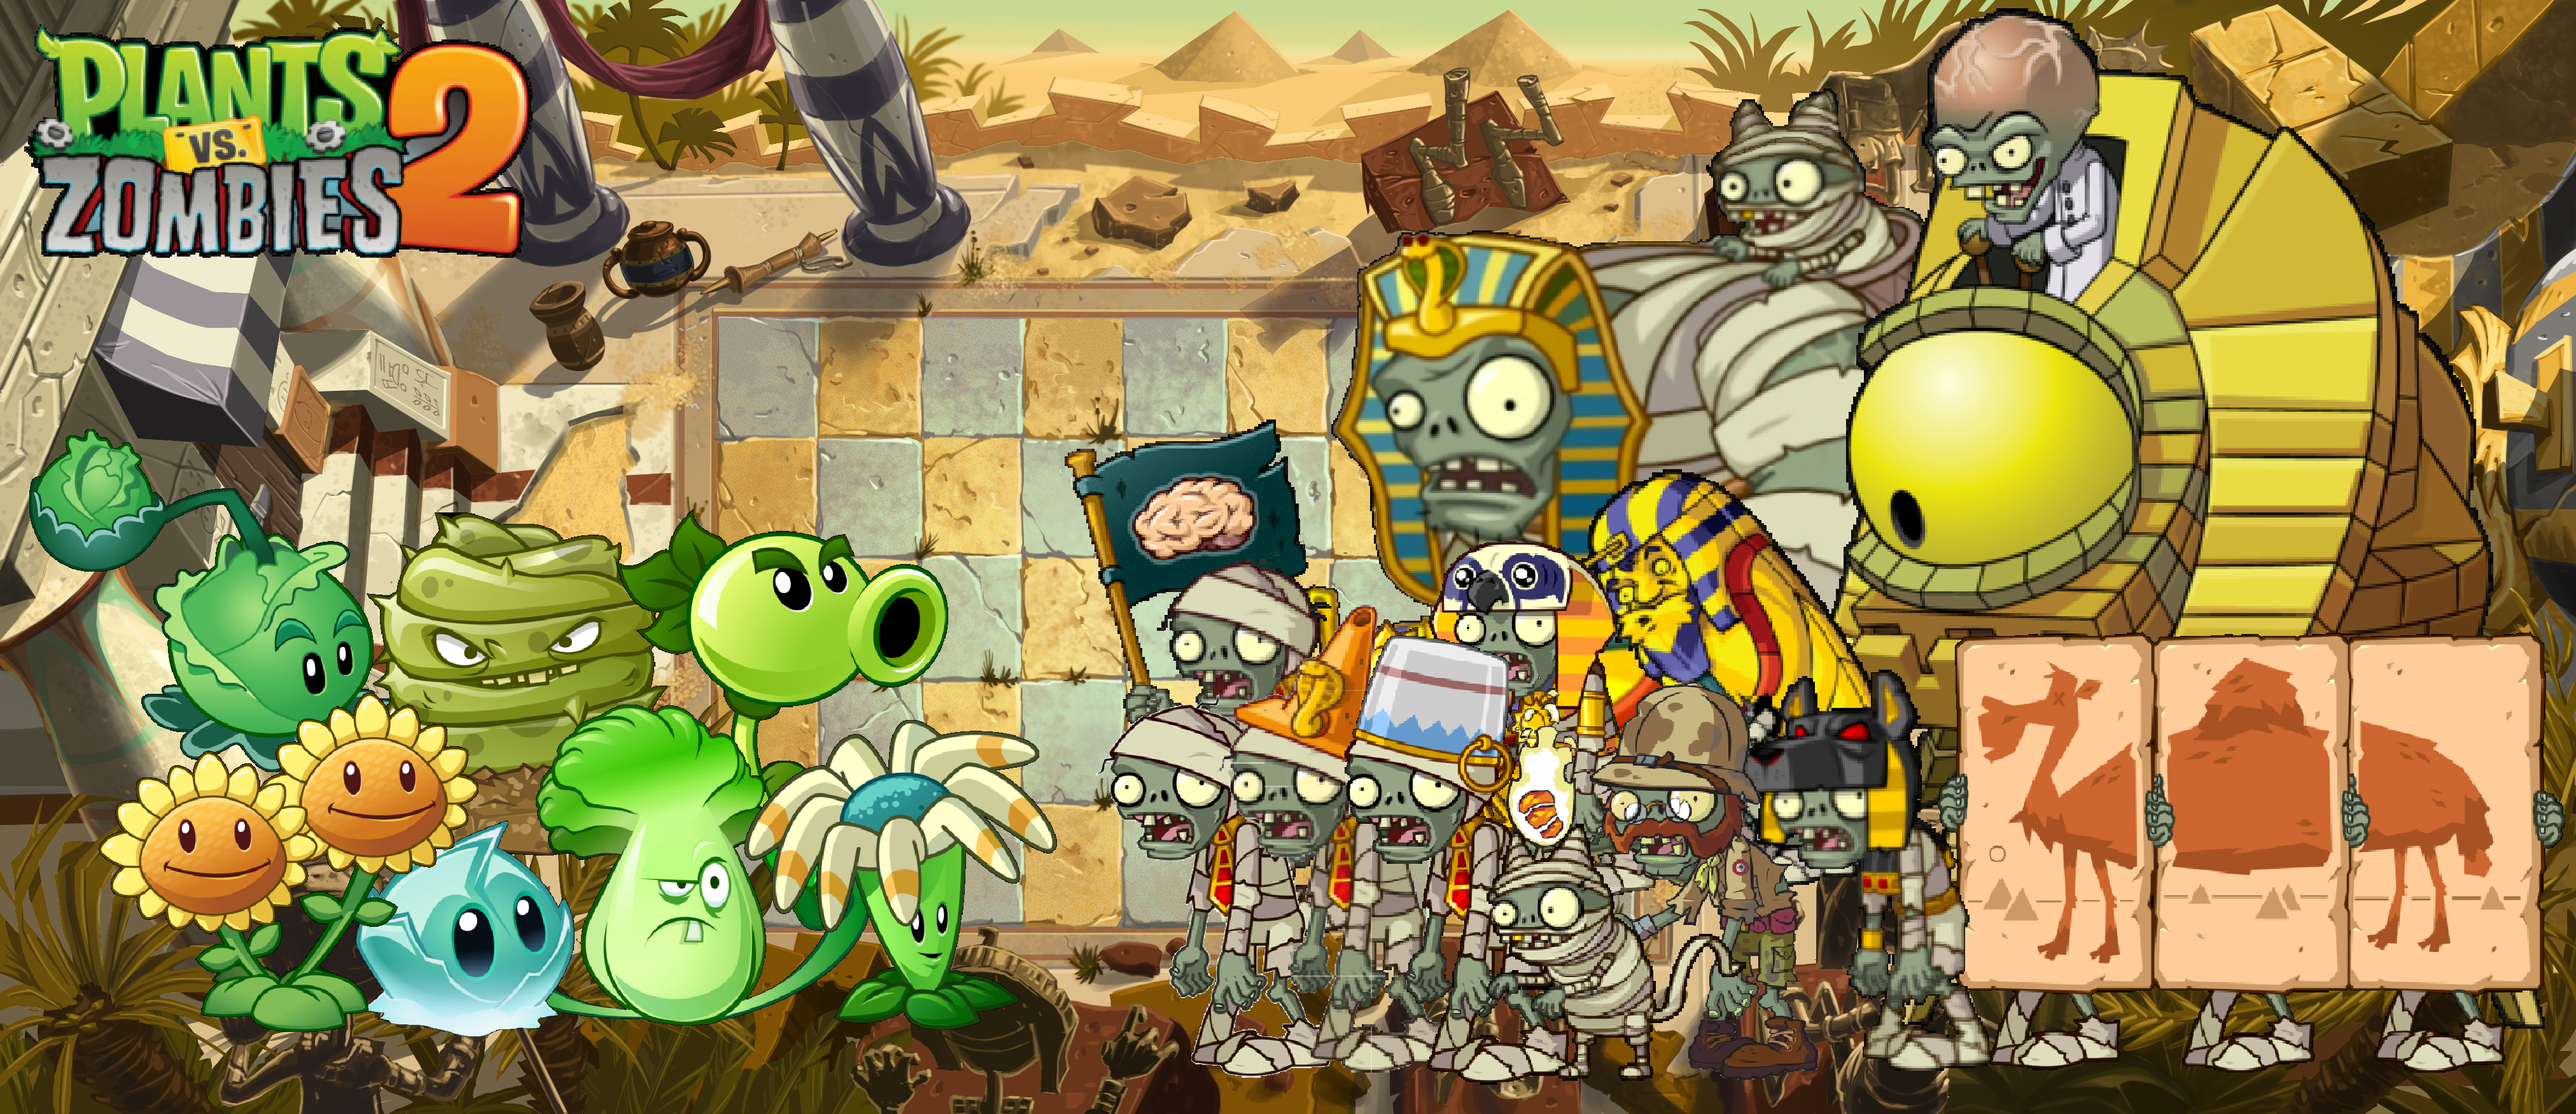 Plant Vs Zombies 2 Wallpaper: Plants Vs Zombies 2 Ancient Egypt Wallpaper By